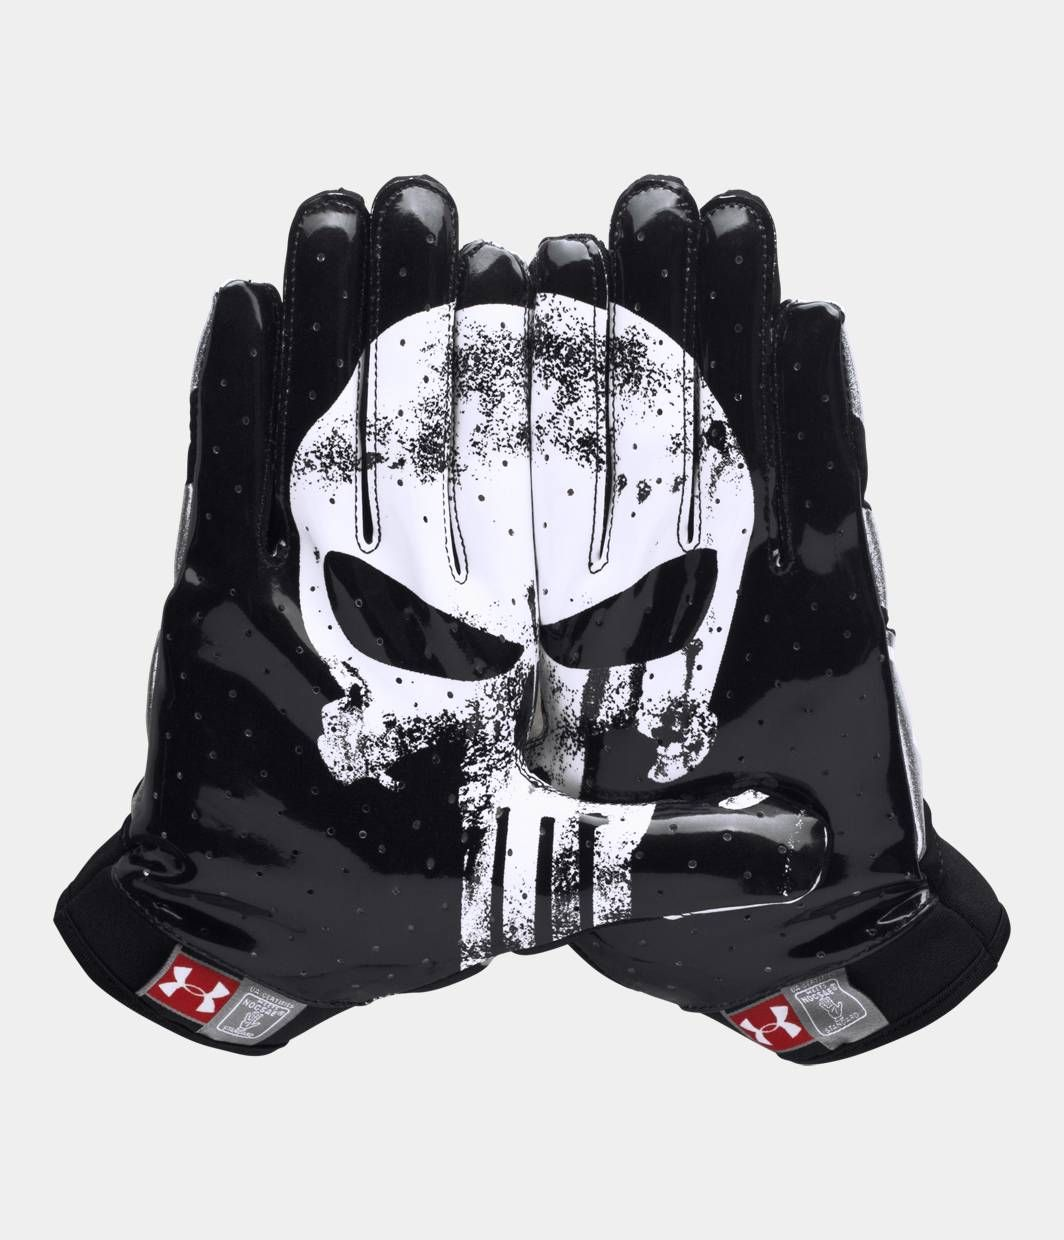 Under armour leather work gloves - Men S Under Armour Alter Ego Punisher F4 Football Gloves Under Armour Us